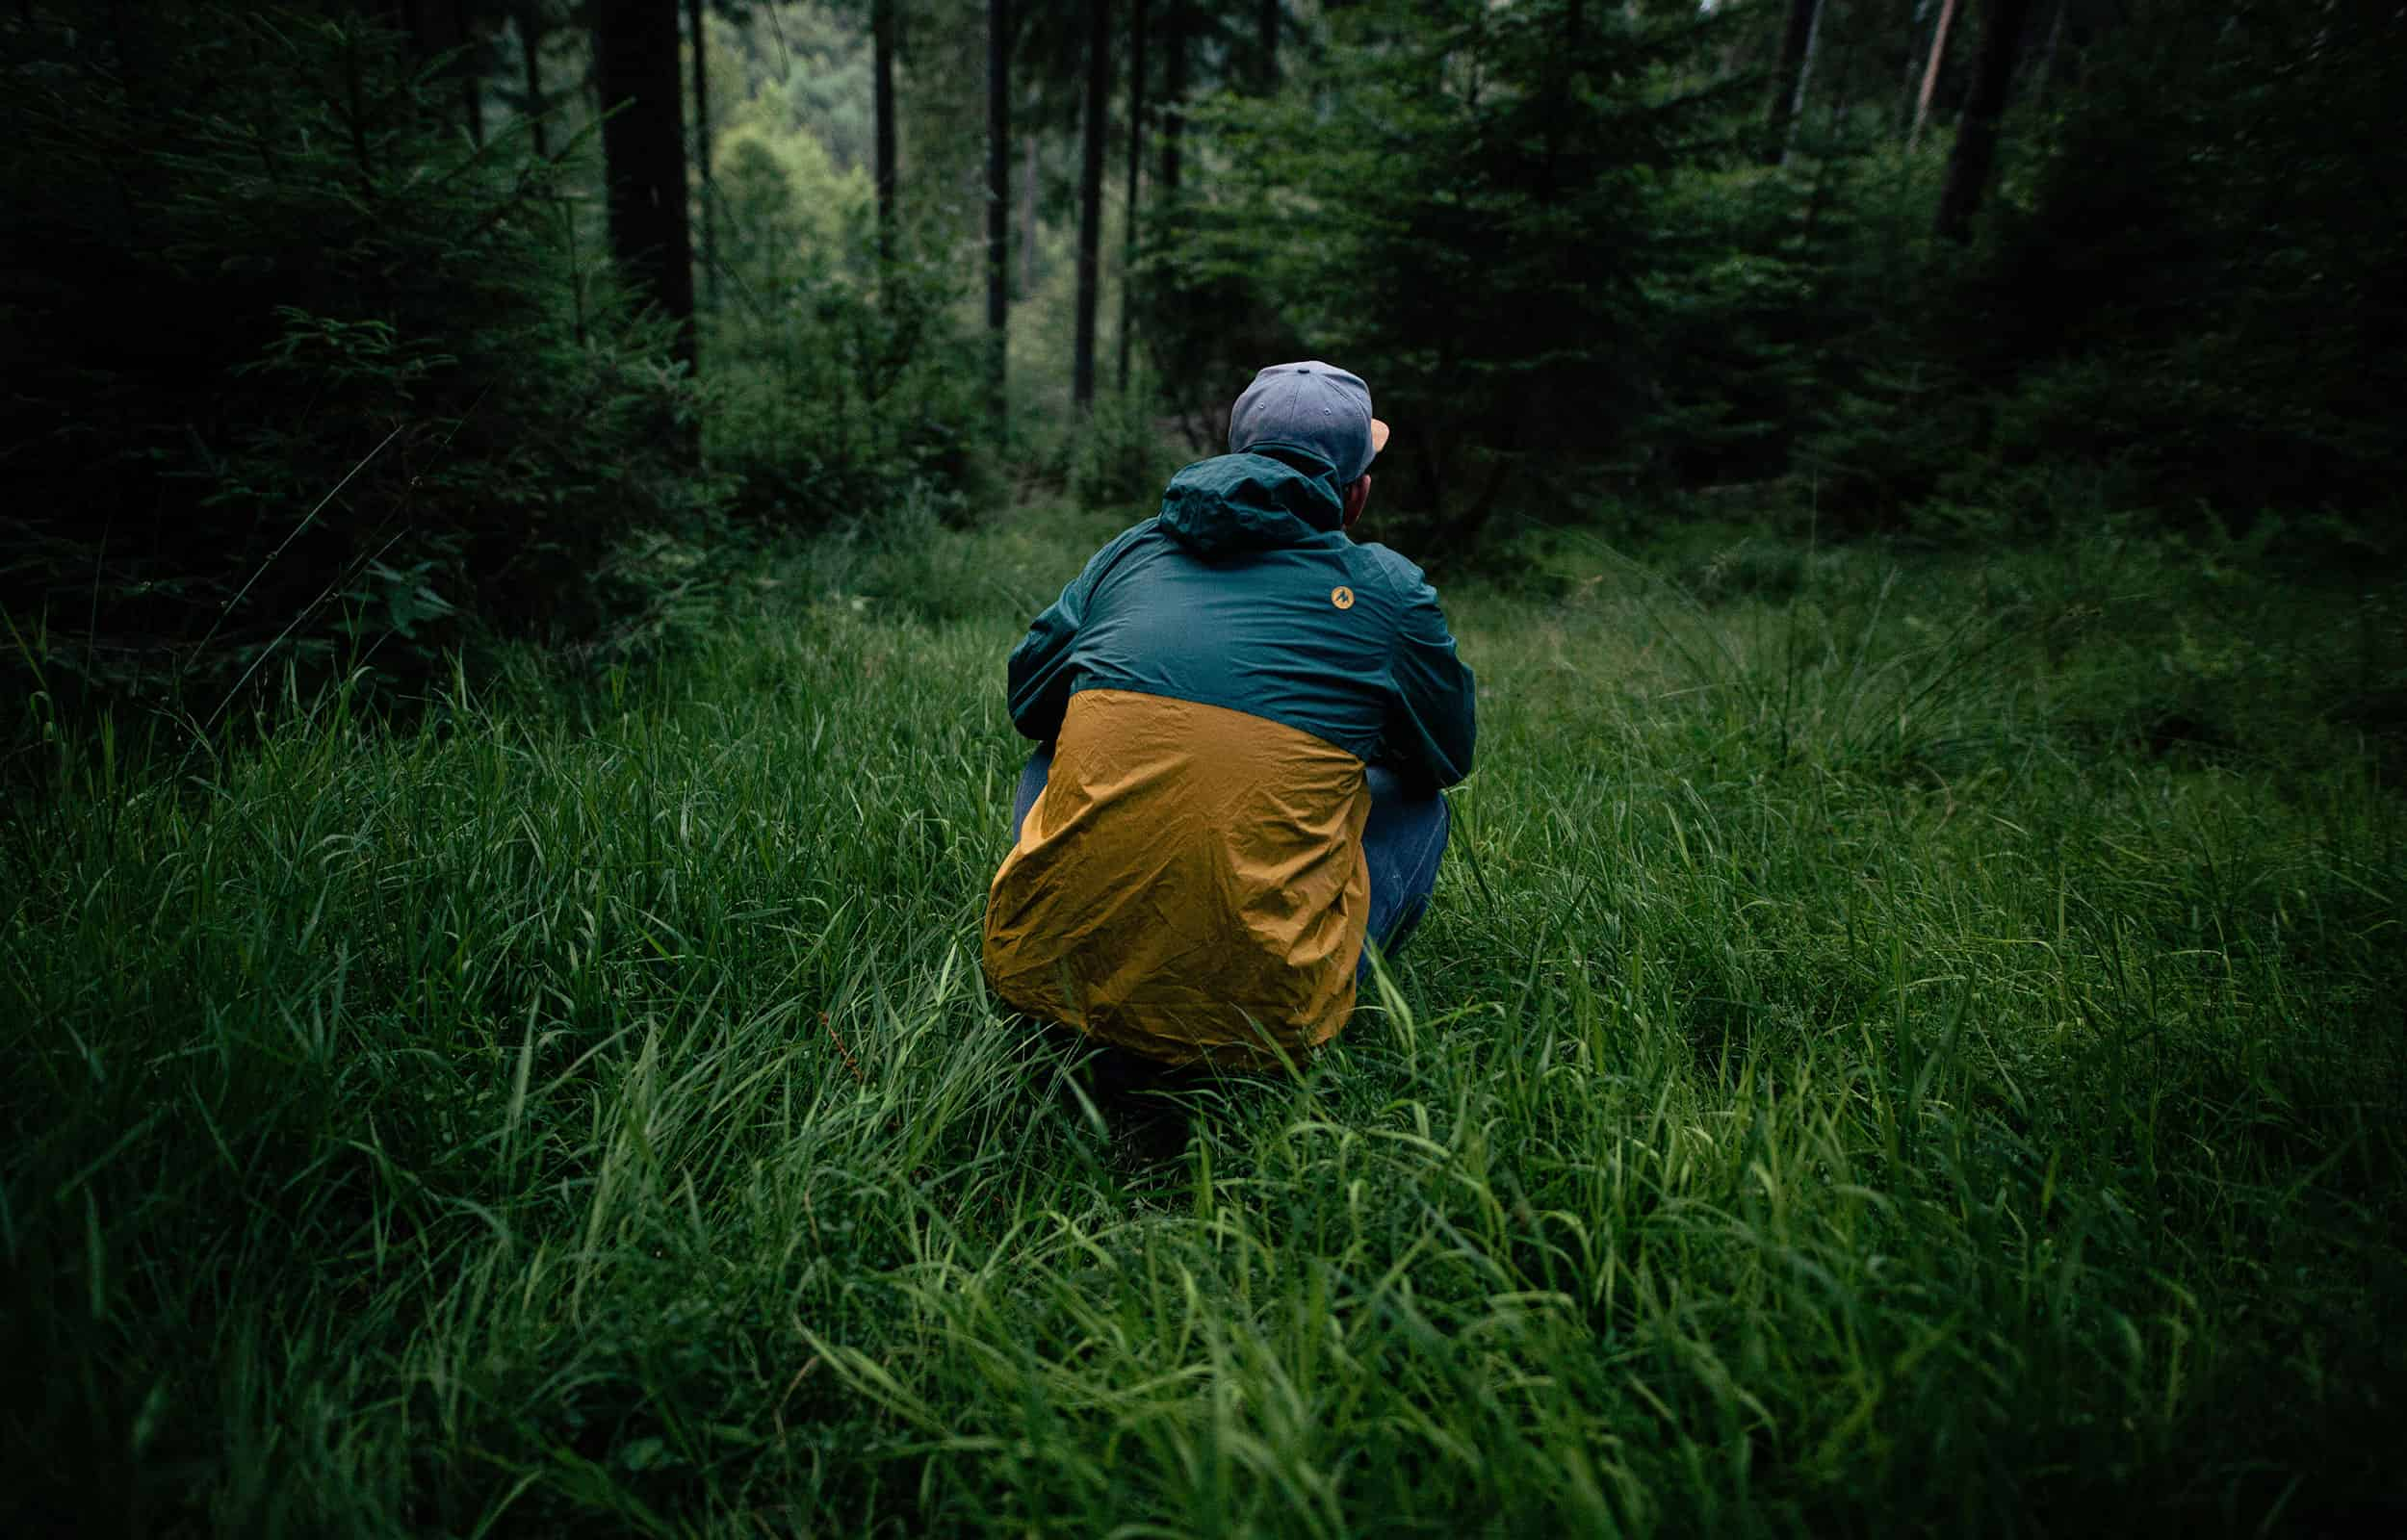 guy squatting in a wooded area wearing a rain jacket